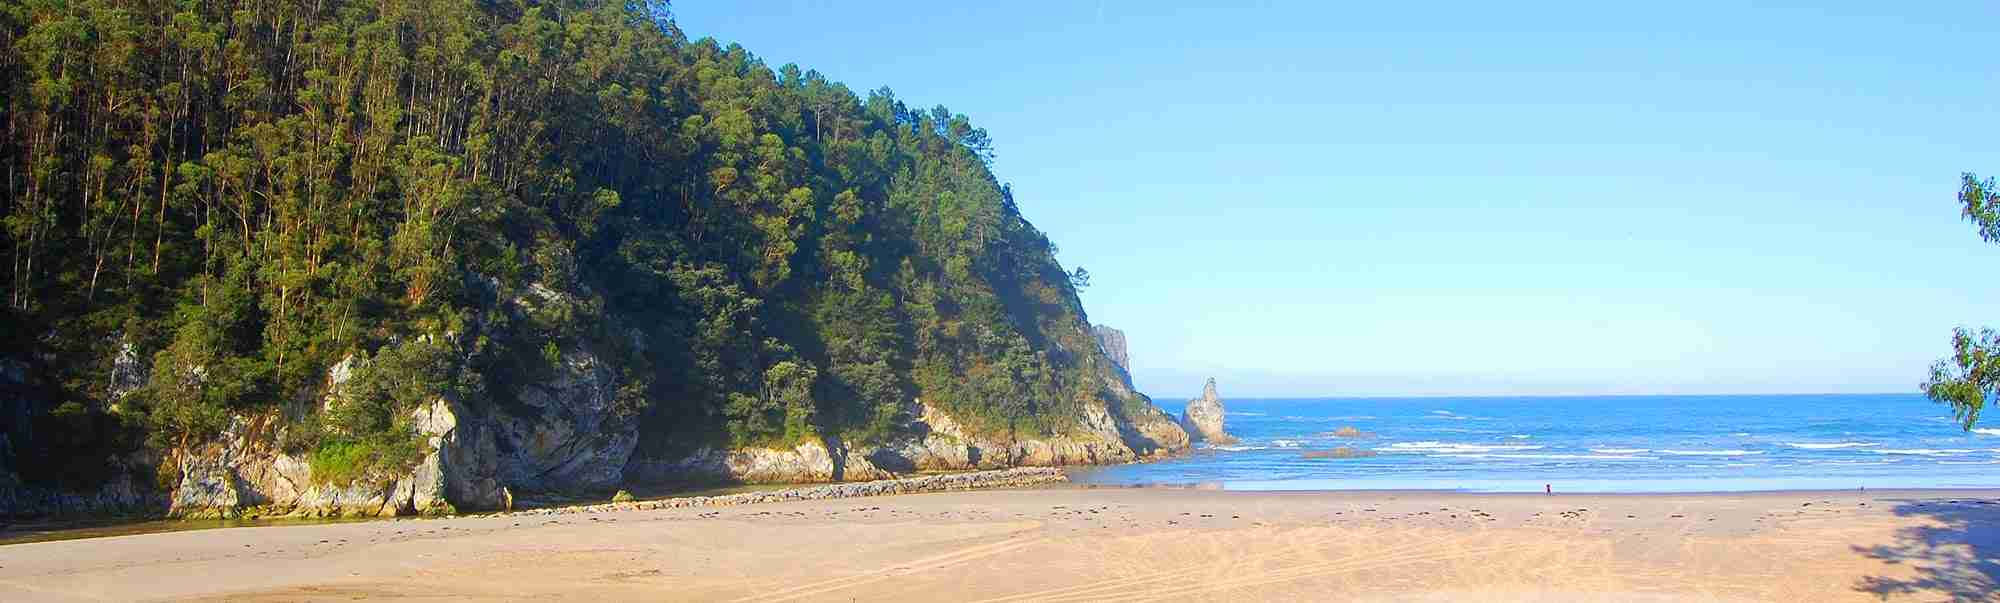 Large Holiday  Villas in Asturias near the beach